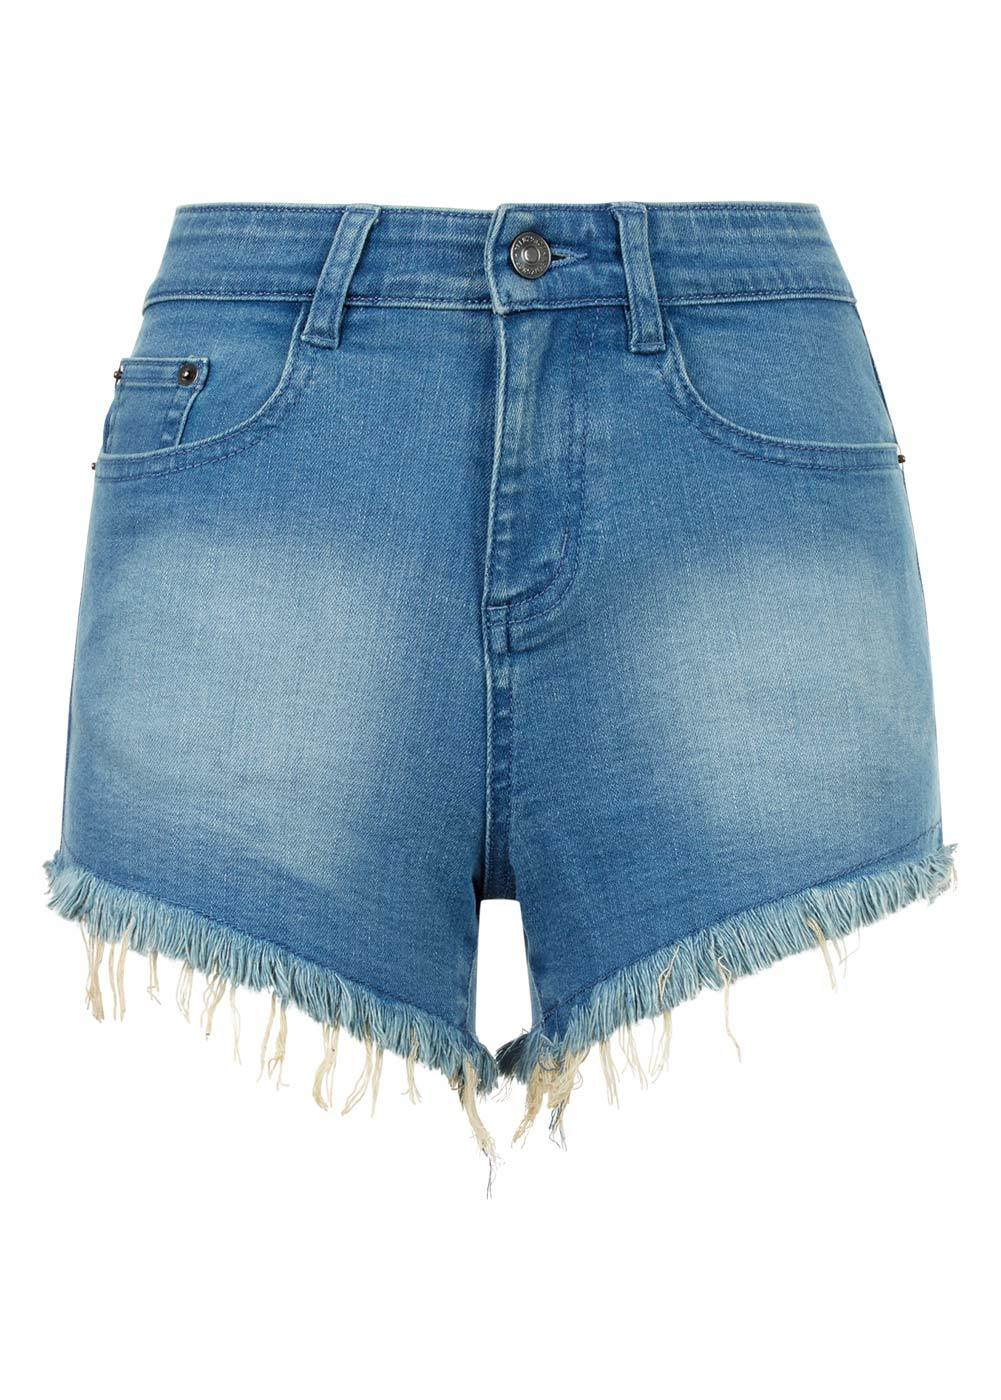 Girls Light Blue Denim Shorts With Embroidered Eyes - Front